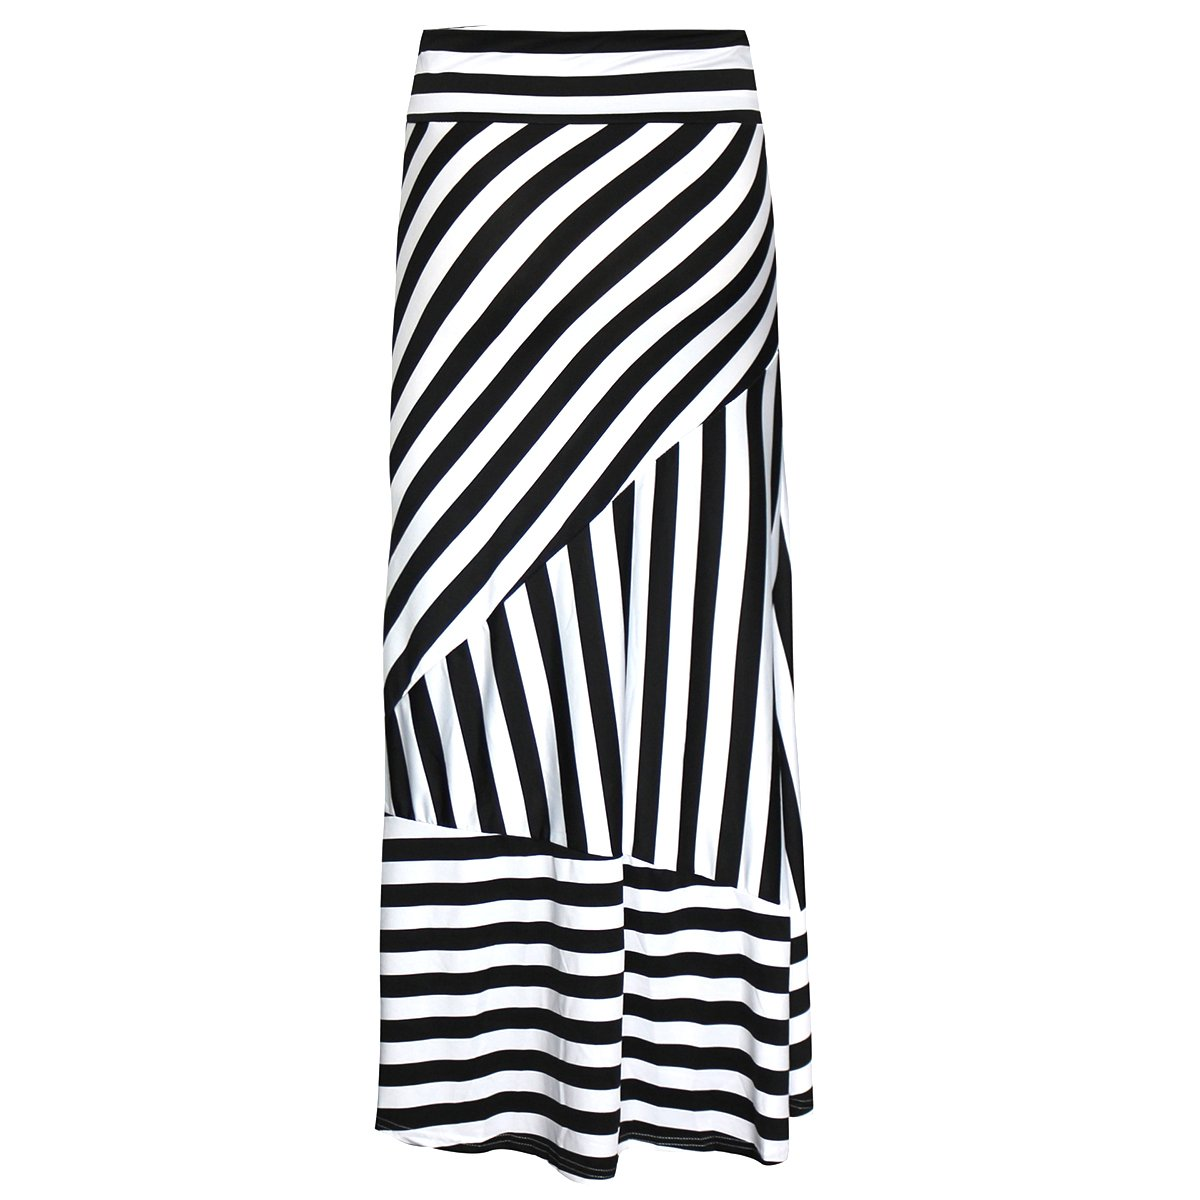 Women Black & White Stripes Maxi Long Skirt High Waist Straight Full Skirt Summer Skirts for Daily Shopping Evening Party Beach Travel Black+White 2XL